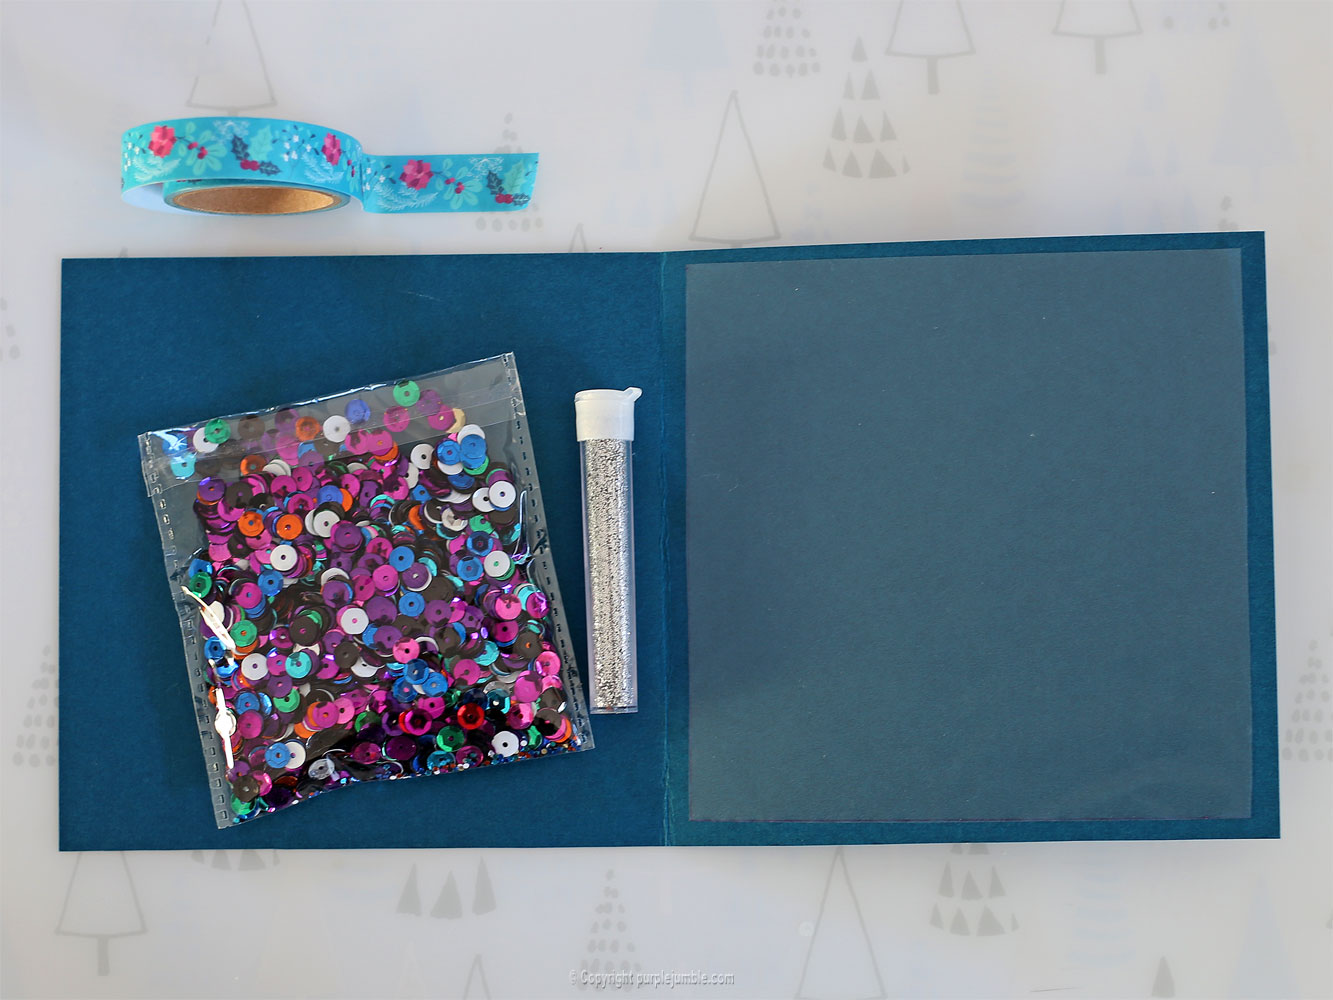 diy carte de vœux bleu rosaces shaker box paillettes